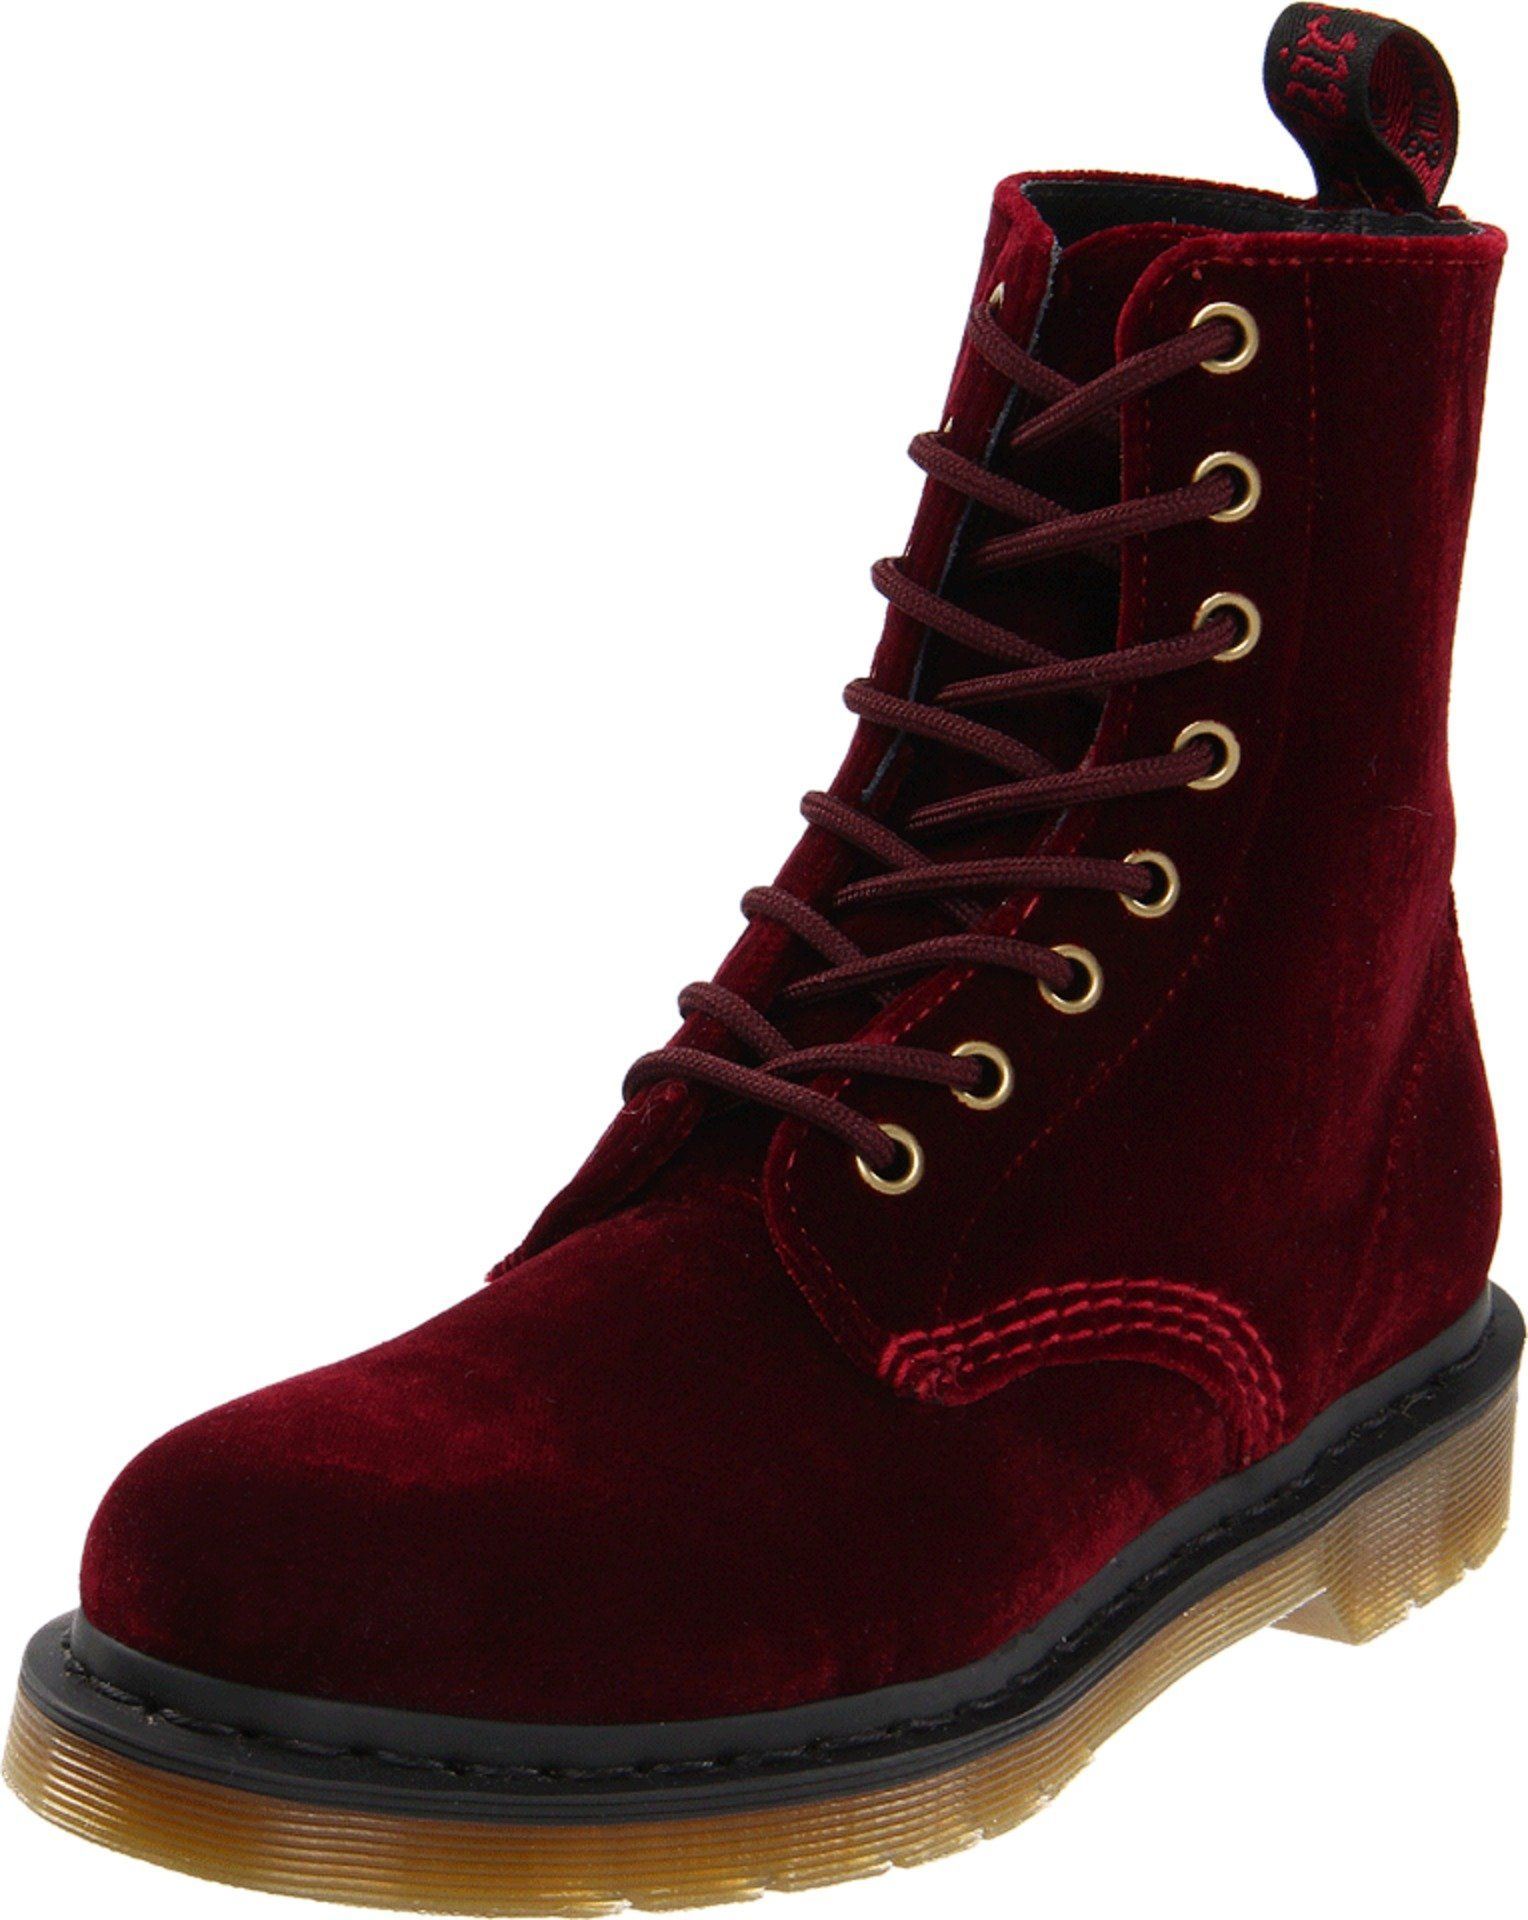 Dr. Martens Women's Page Boot,Cherry Red Zebra/Velvet, Leeanna would be